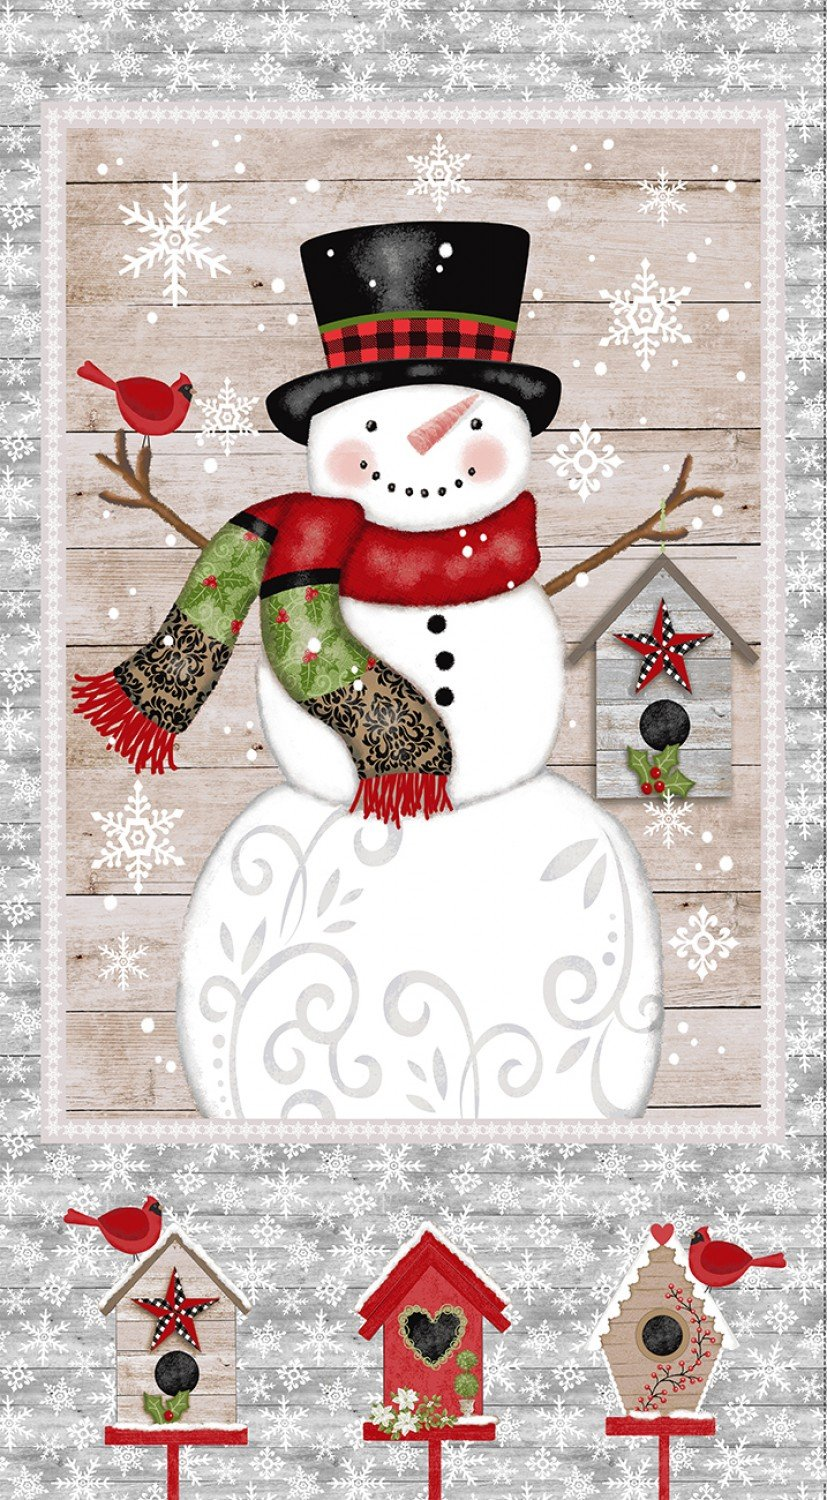 SE-Snow Place Like Home 5159P-90 Gray - Snowman Panel 24 x 44